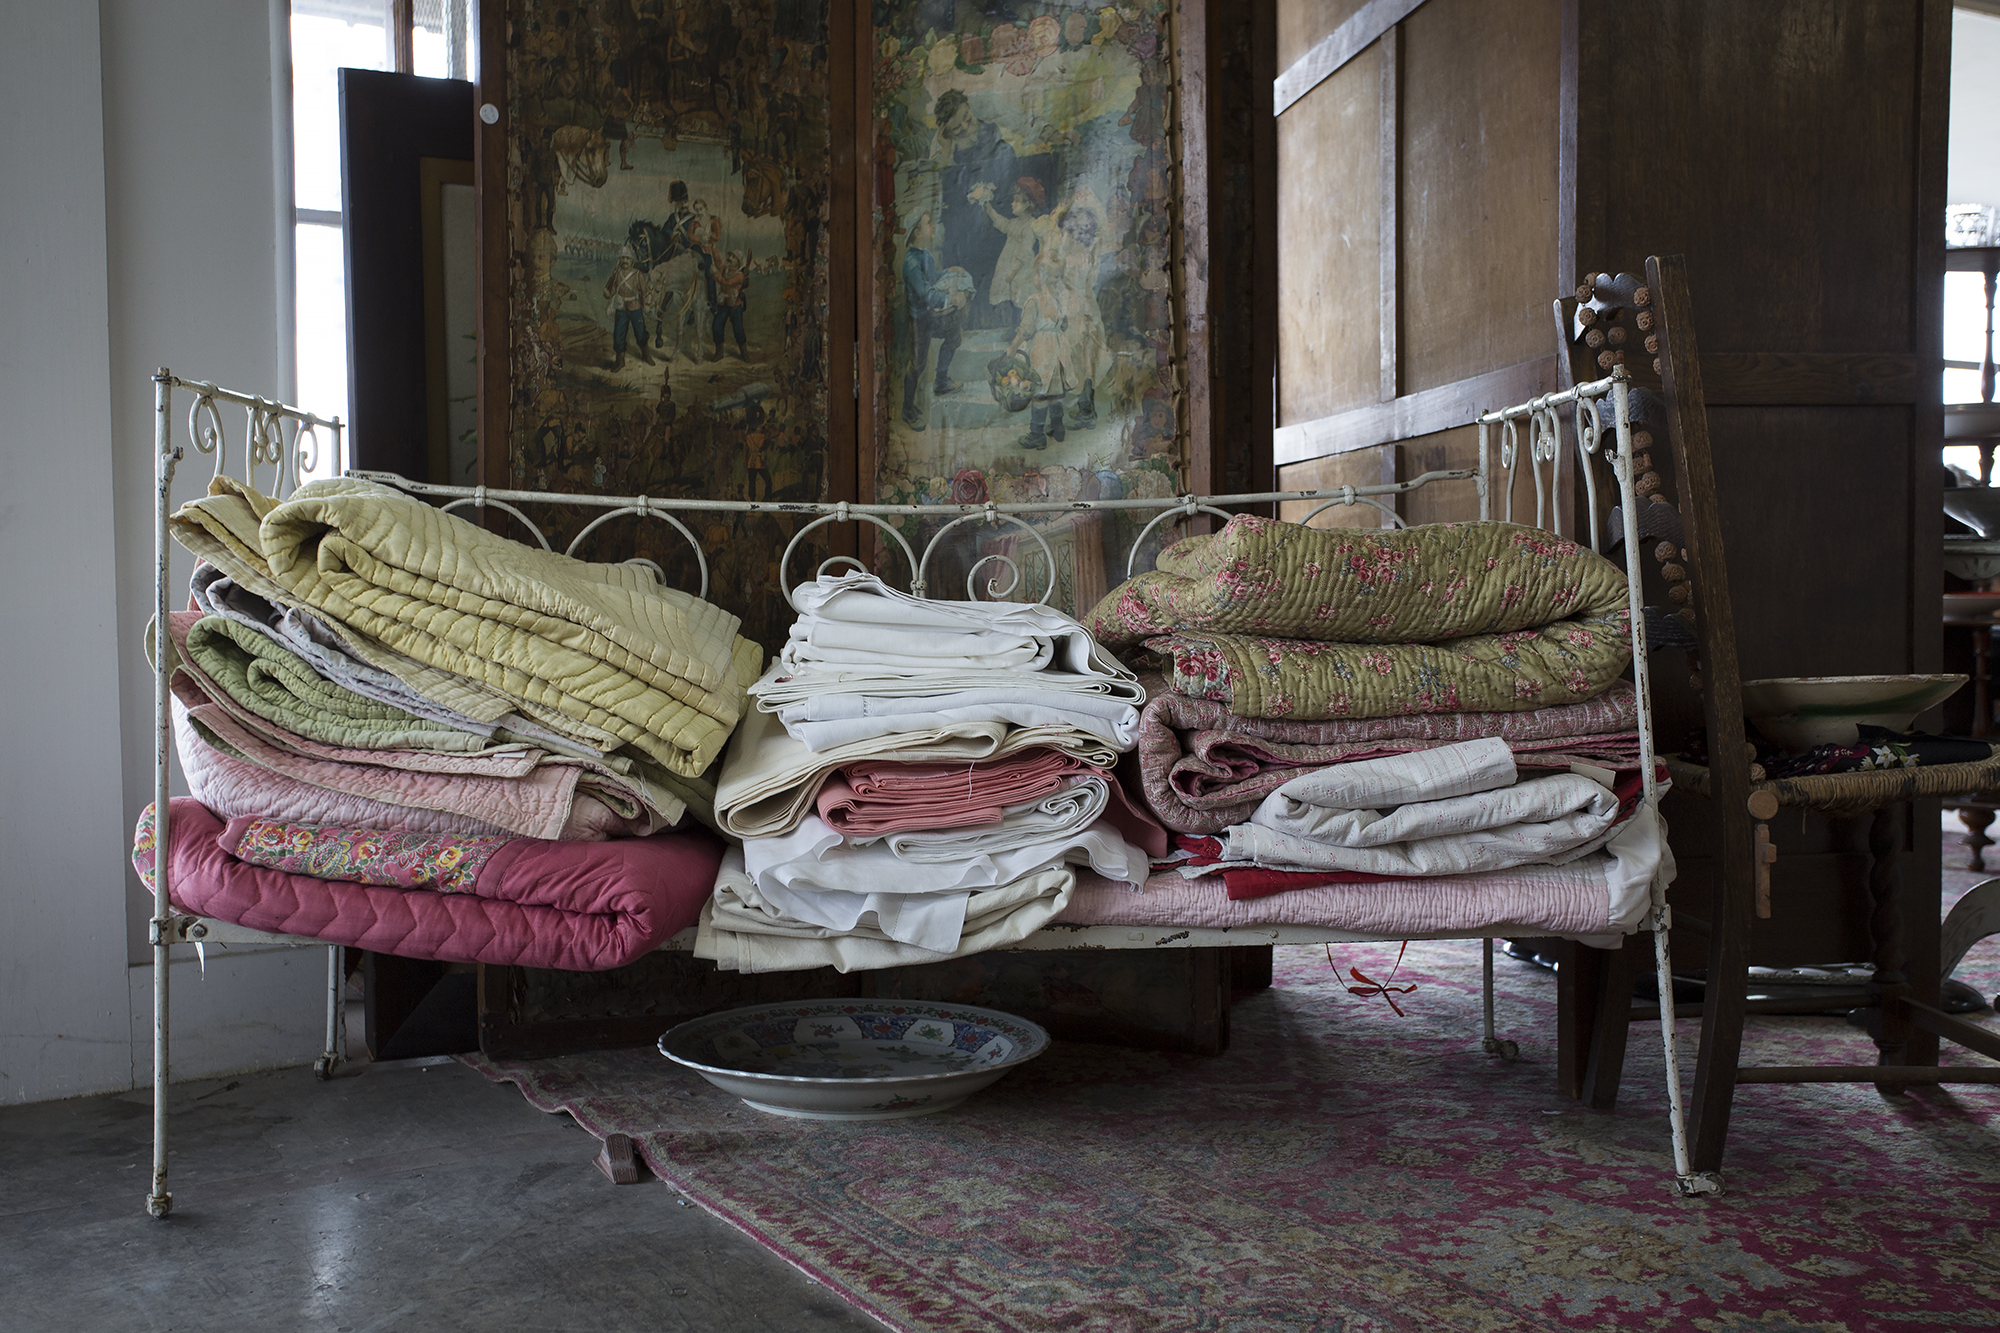 Everything I look at when I'm browsing this wonderful shop, makes me think about the stories these items could tell. Who were the people that used them? what was the environment and era that they came from like? This gorgeous bed must've looked amazing all dressed in its best with hand embroidered sheets and sewn blankets.